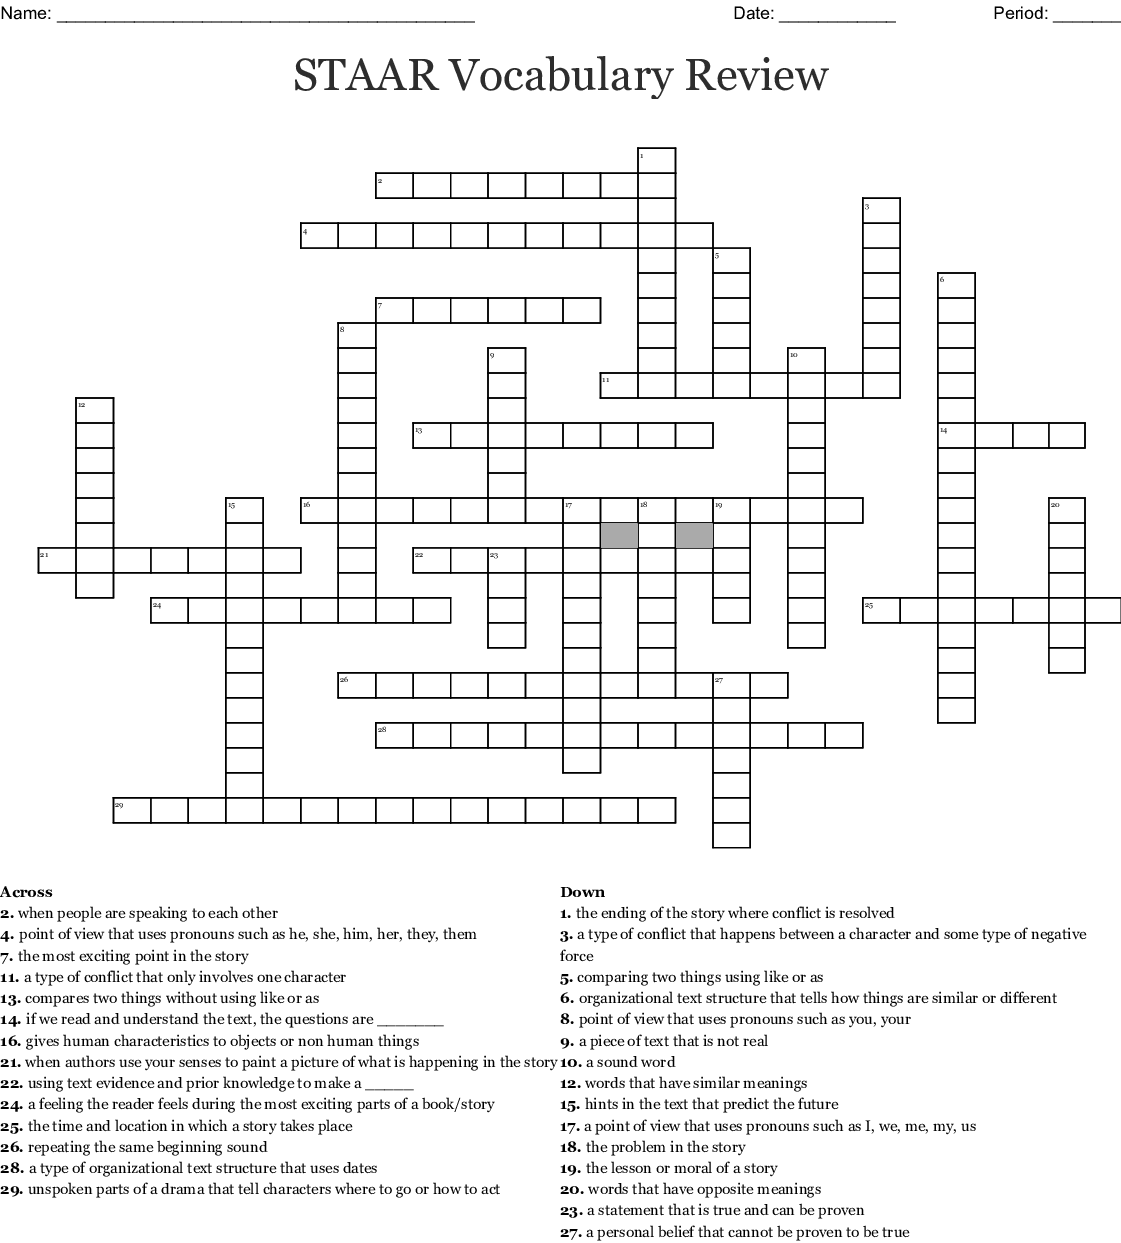 Unit 2 Vocabulary Review Crossword